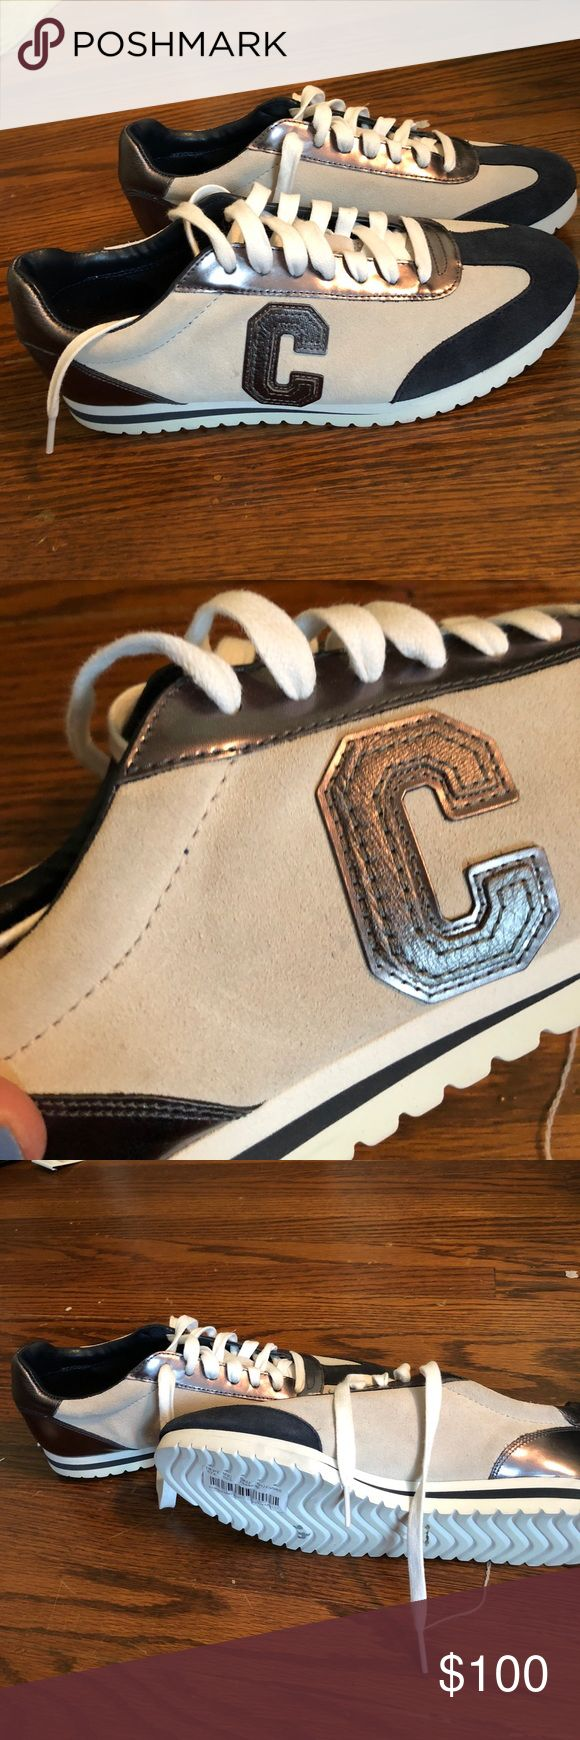 Best 25+ Coach sneakers ideas on Pinterest | Classic adidas ...